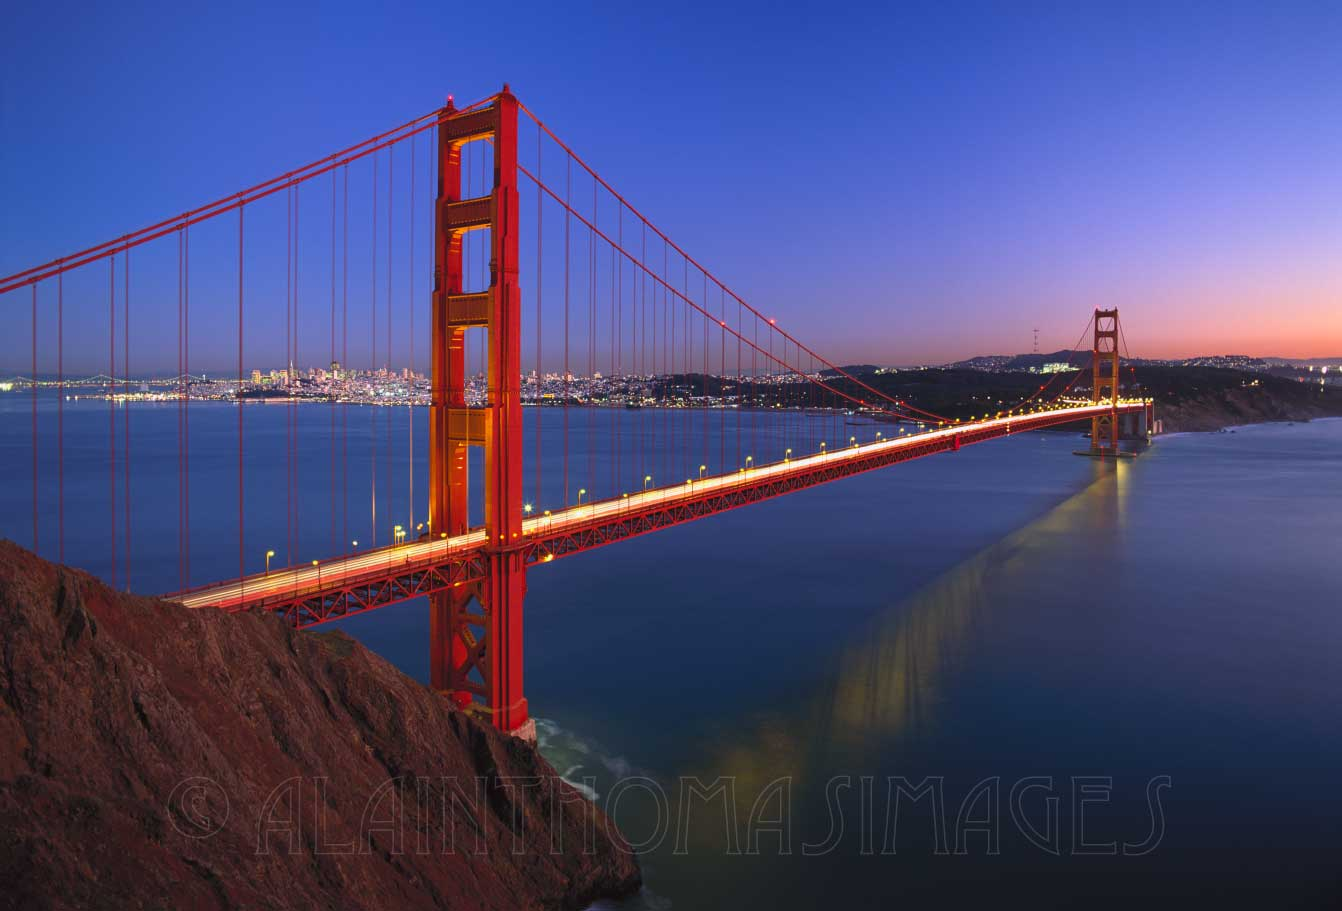 Golden Gate Bridge au crépuscule, San Francisco